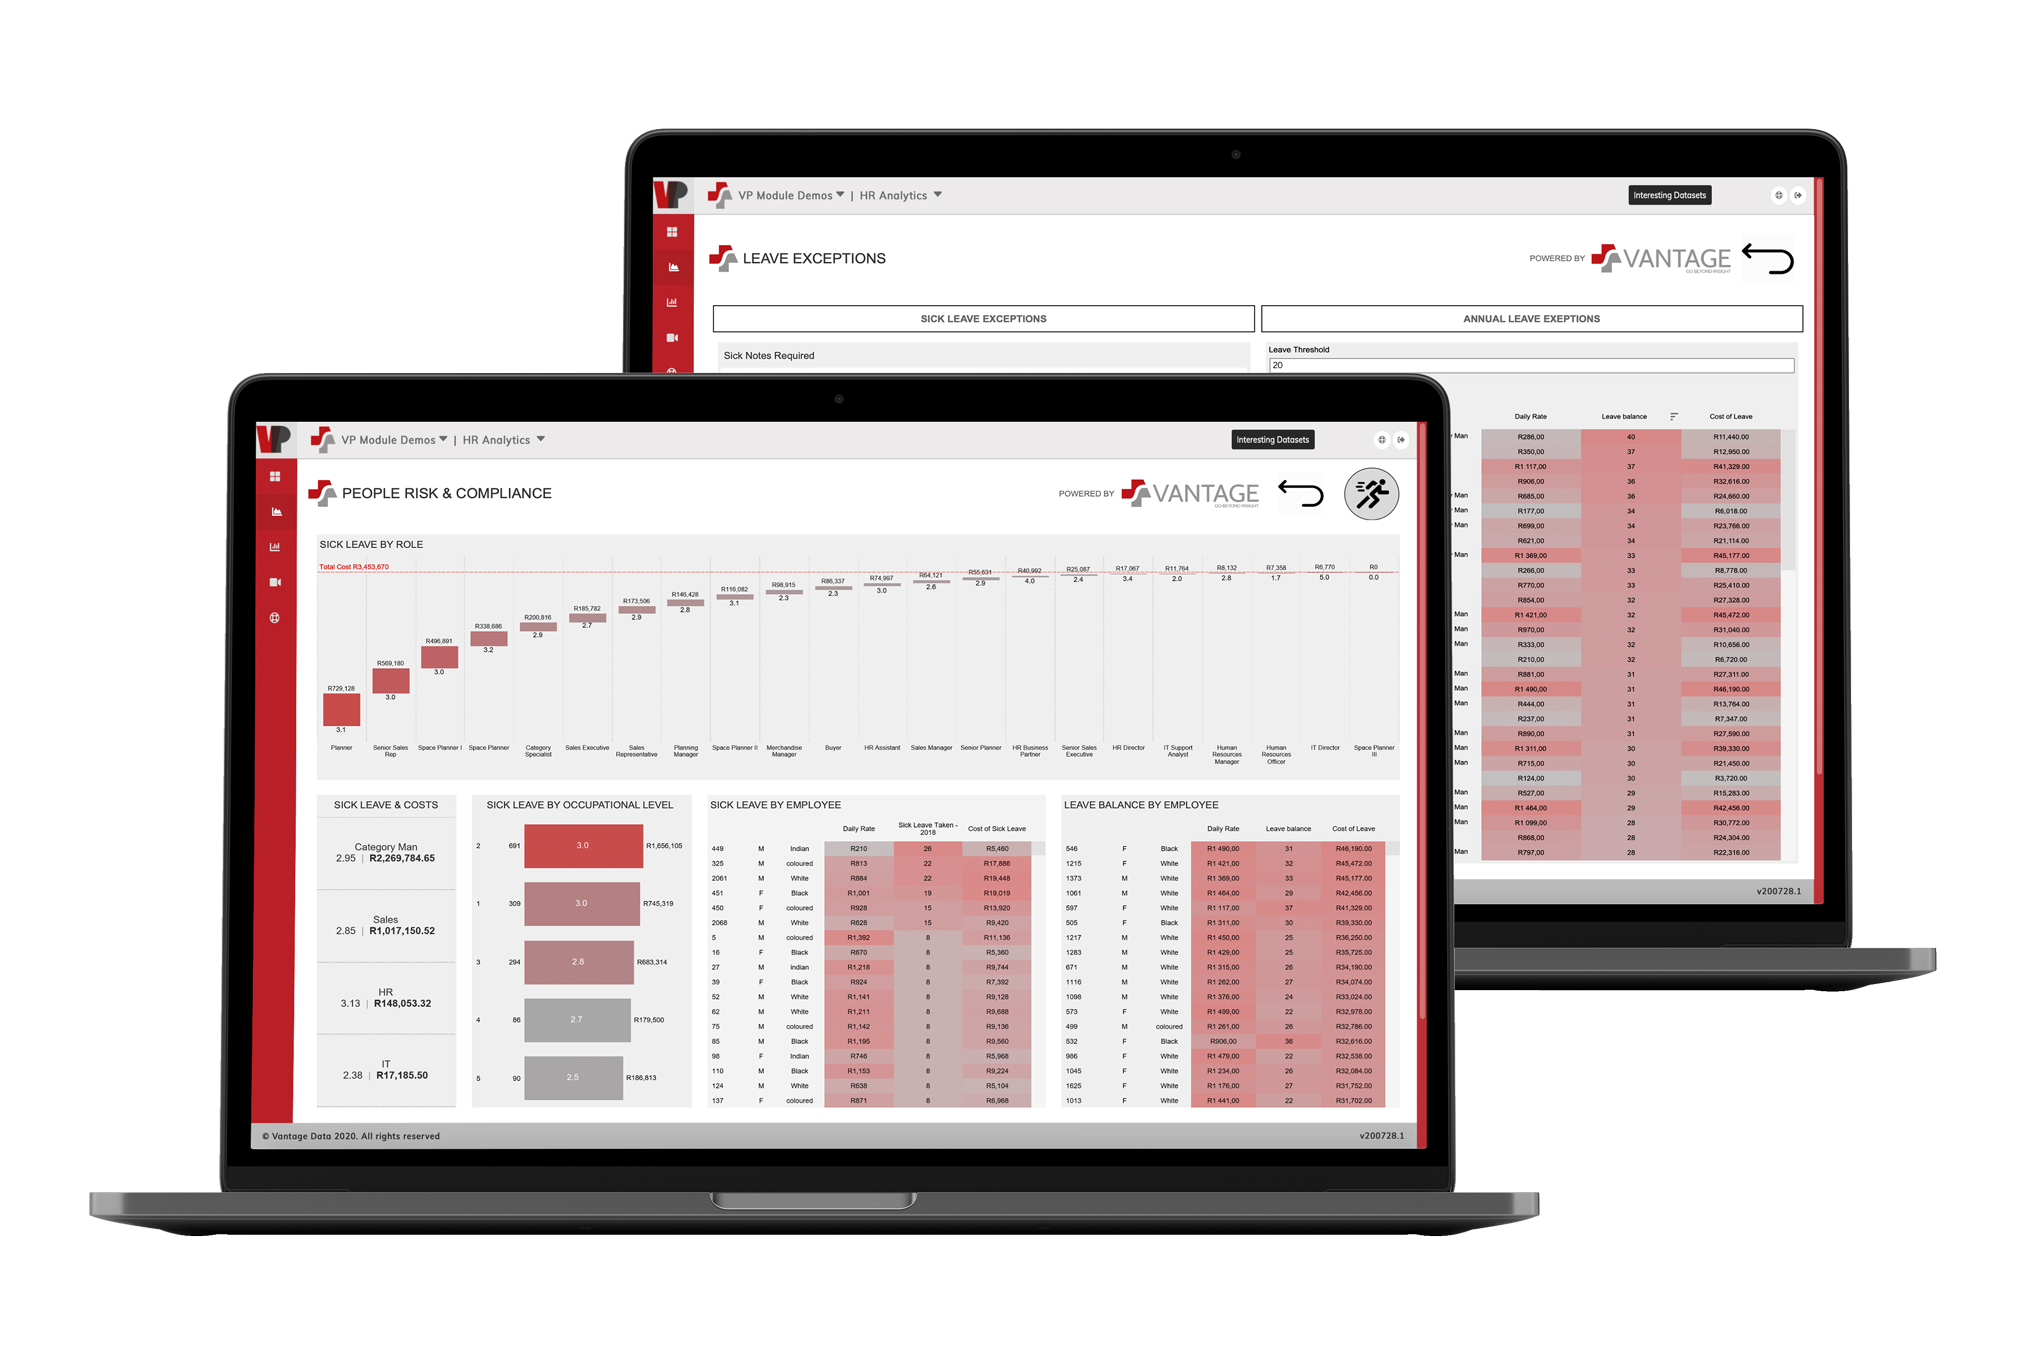 People Risk And Compliance Dashboards